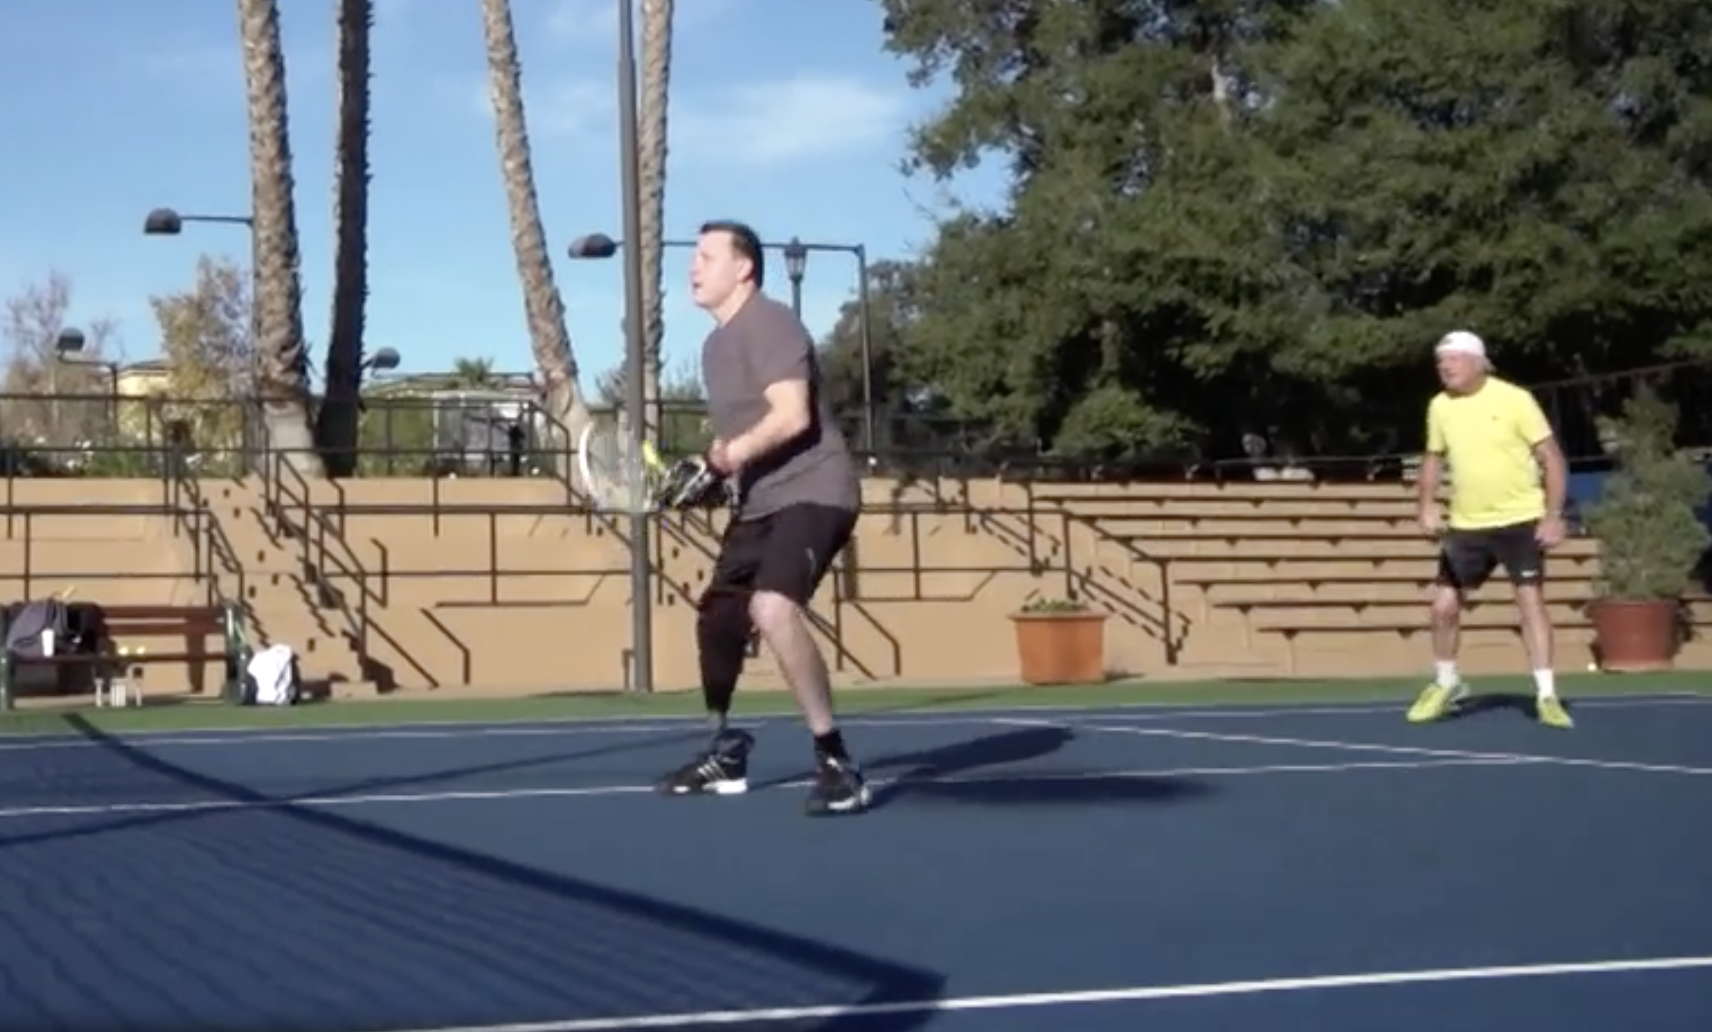 Jonathan back on the tennis court